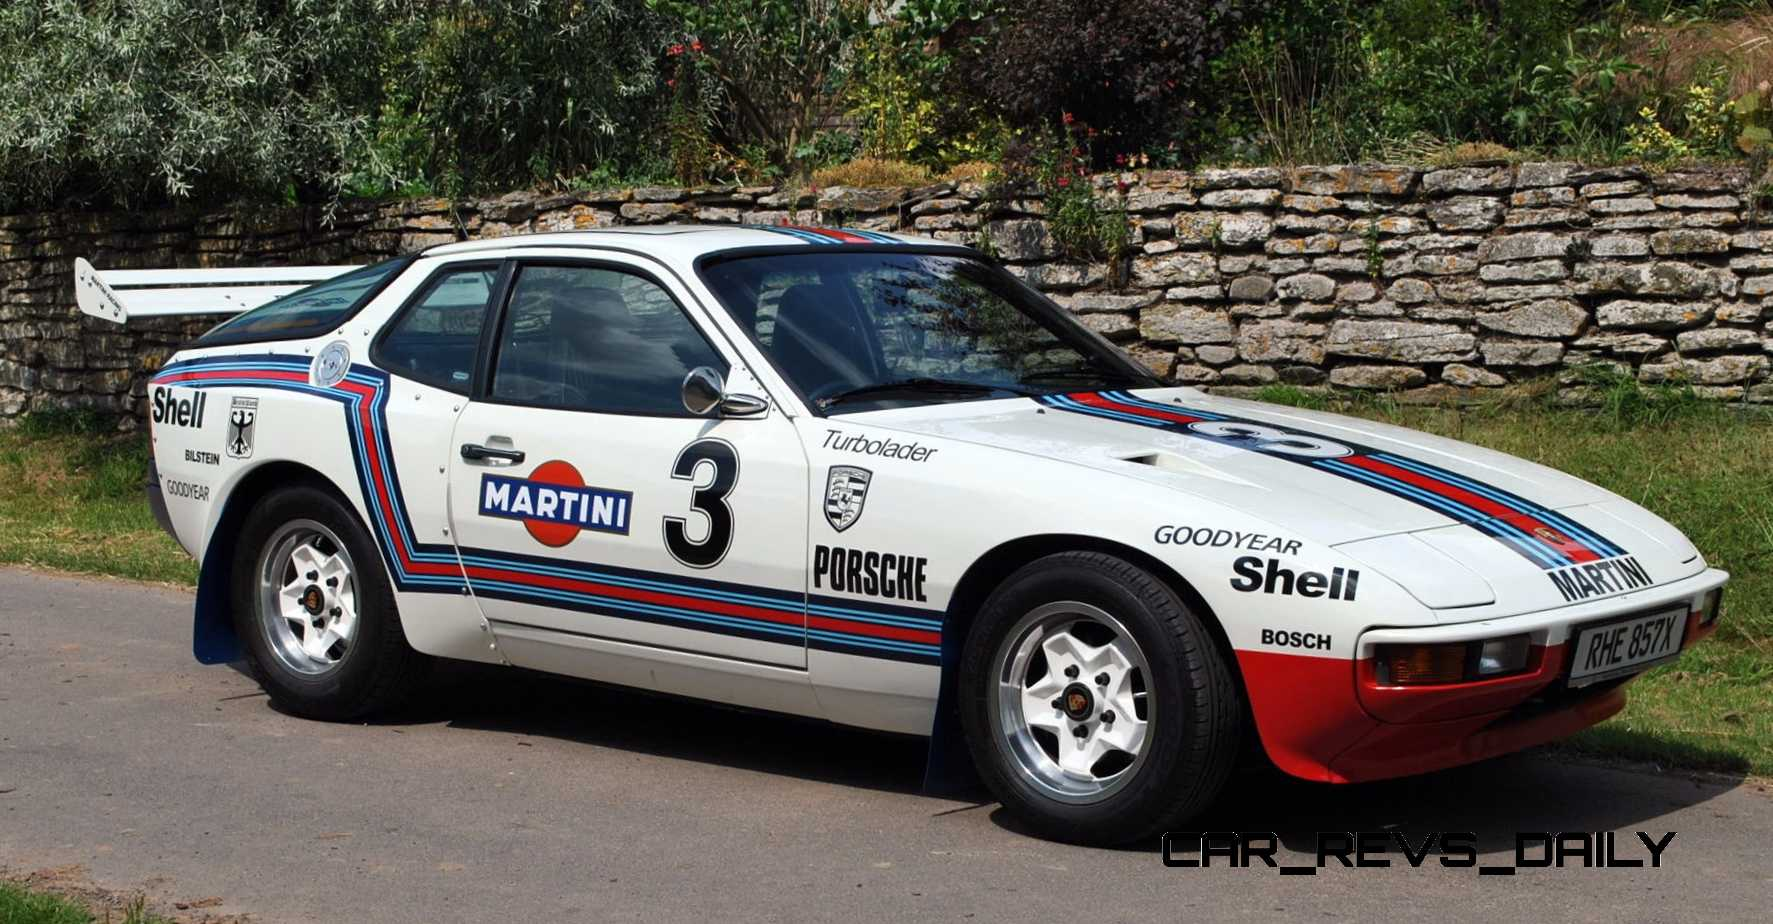 Pristine Porsche 924 Martini Rally Car Up For Grabs In New UK ...